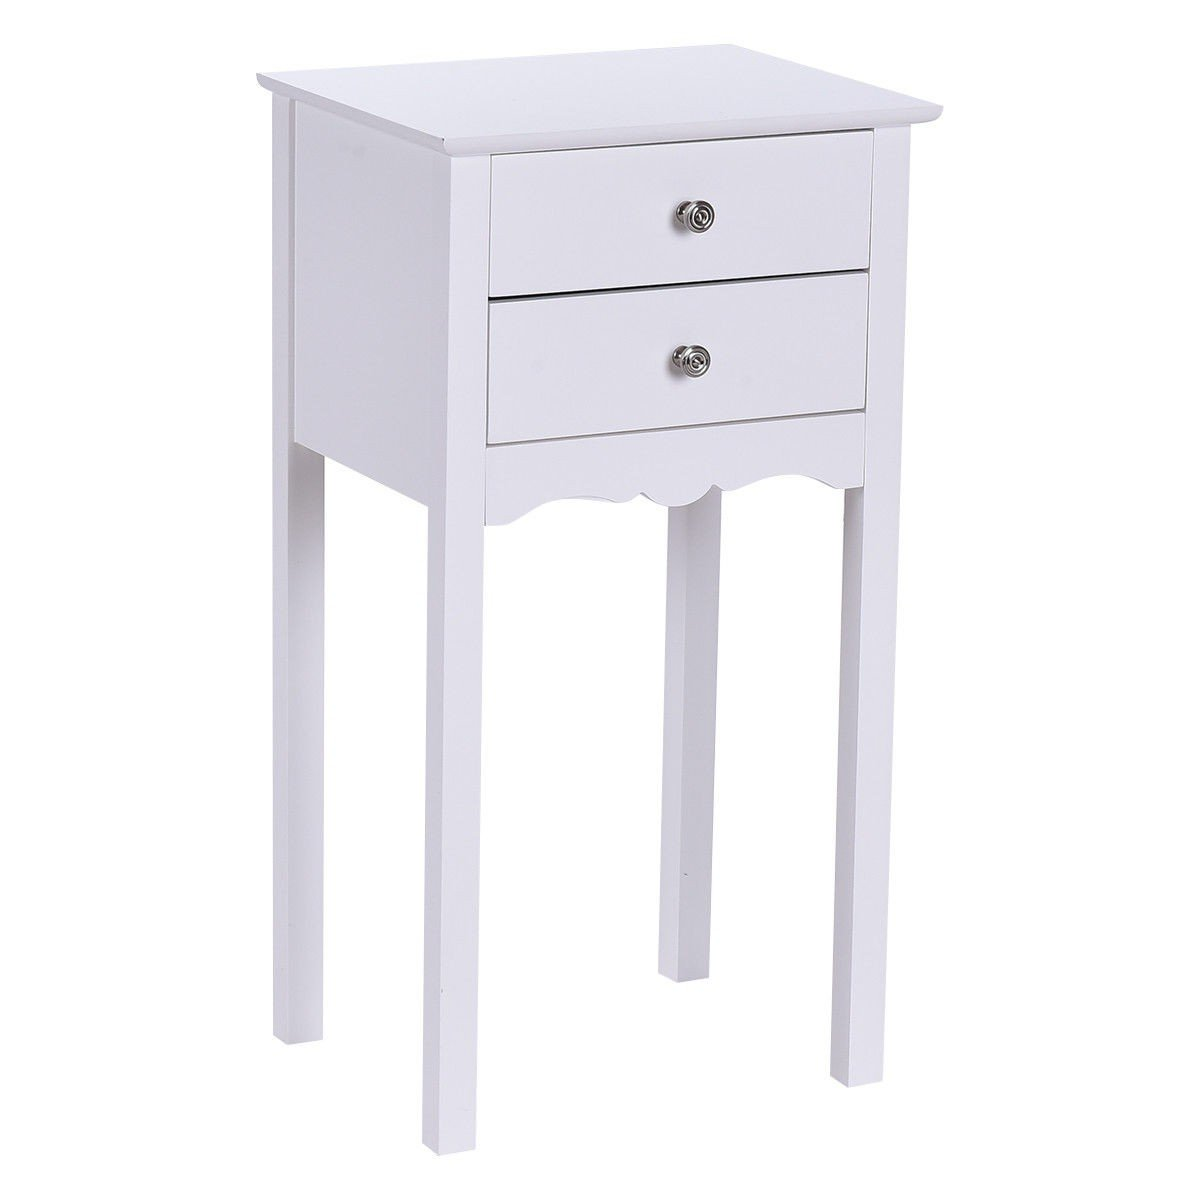 Side Table End Accent Table w/ 2 Drawers - By Choice Products (White)